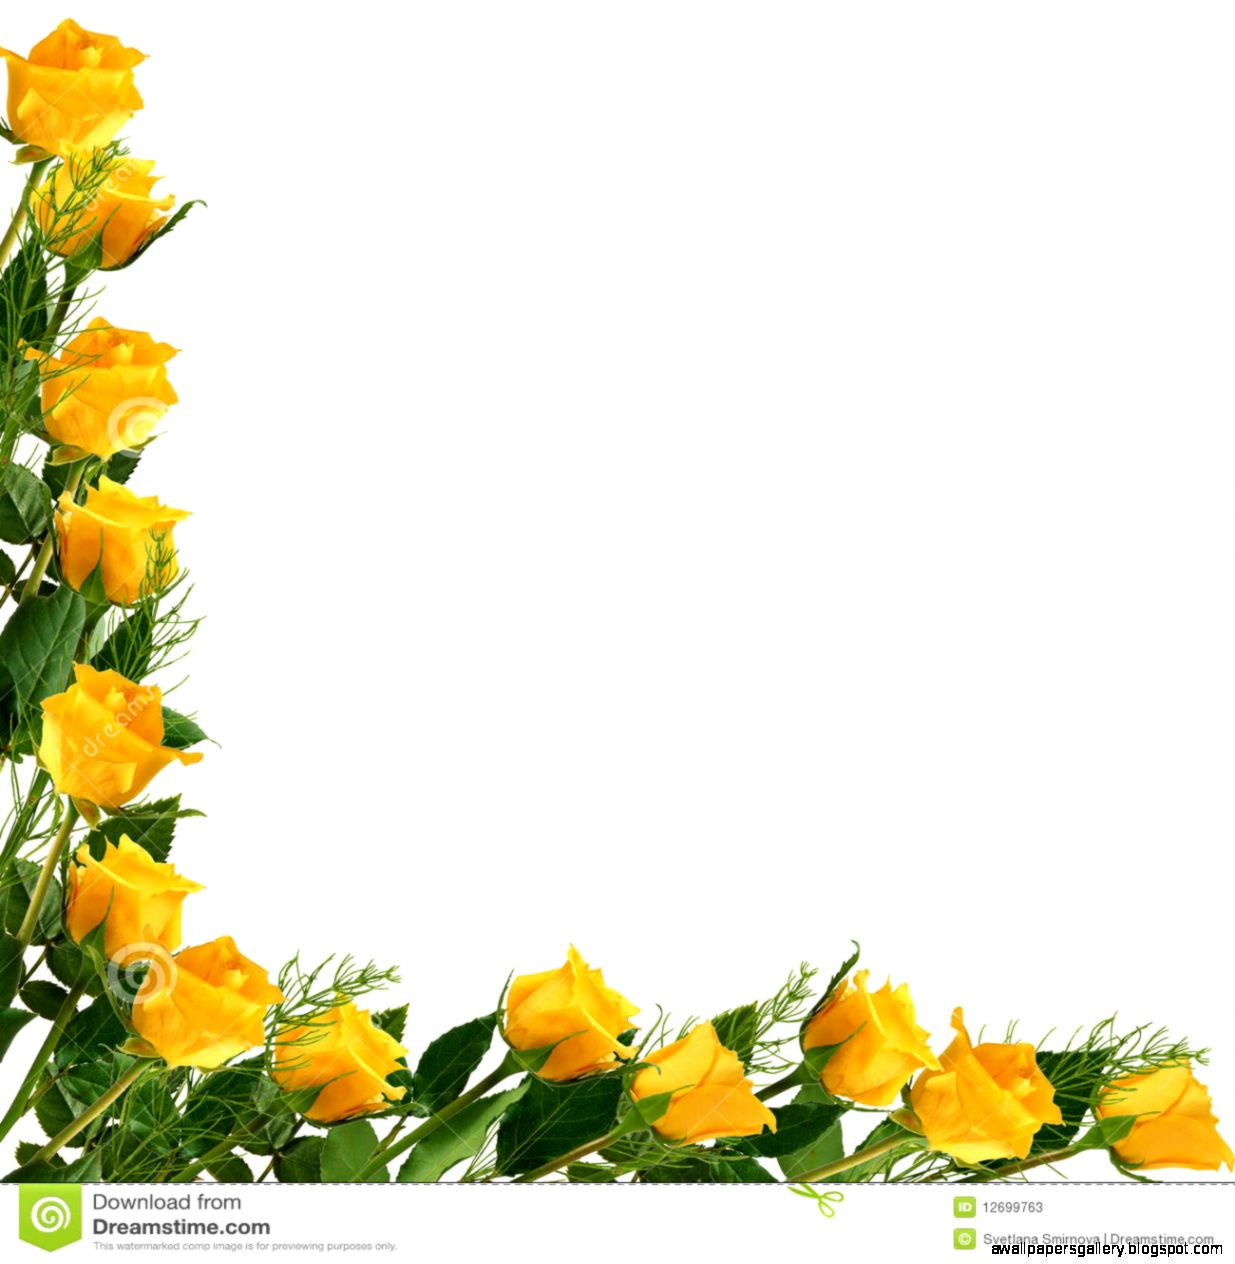 Wallpaper Of Yellow Rose: Wallpapers Gallery